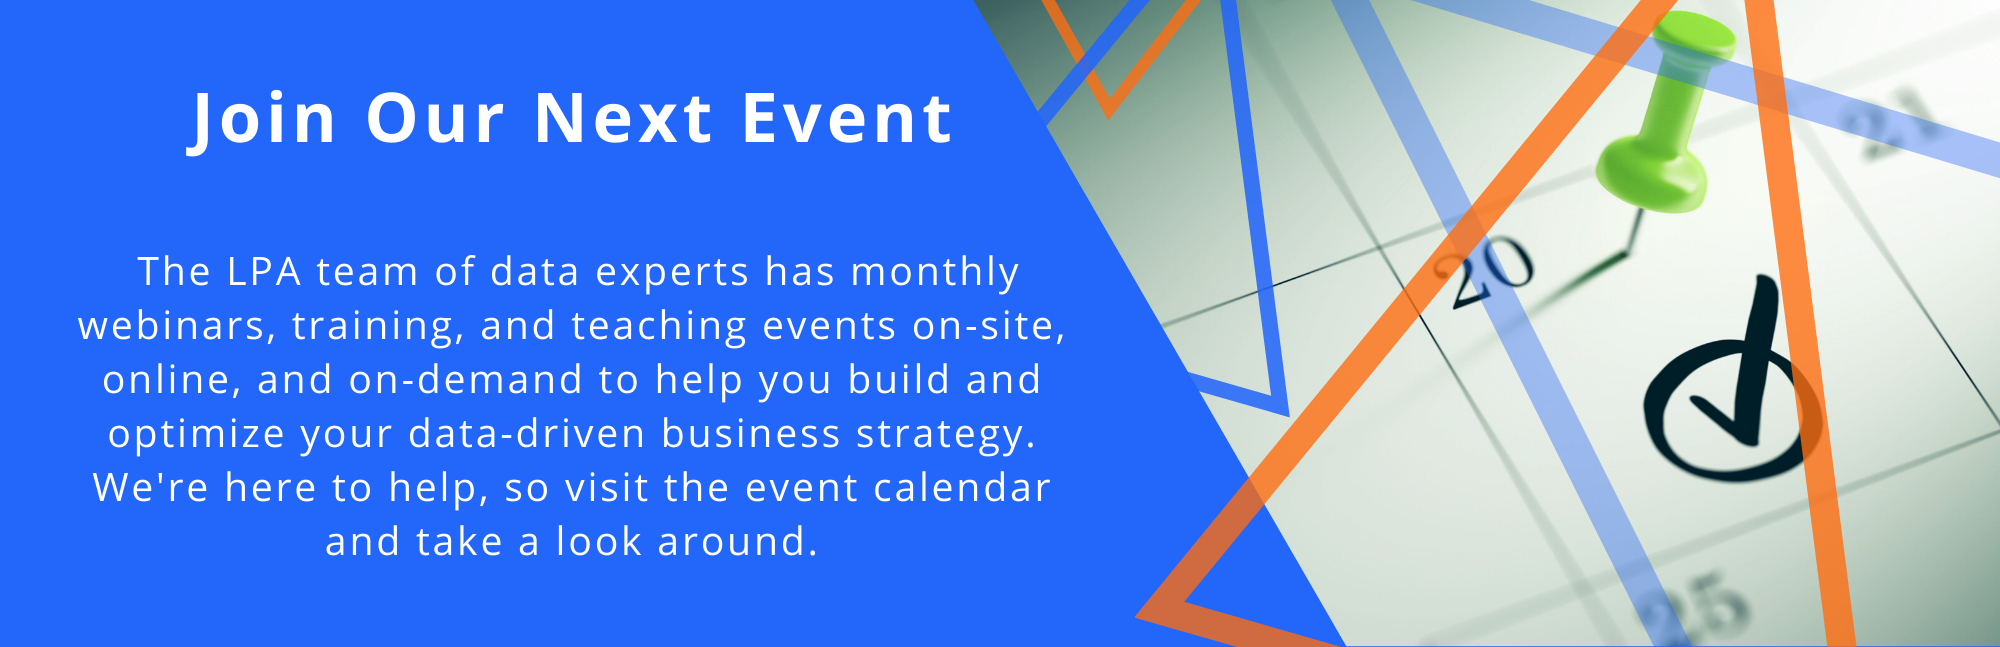 lPA Data Analytics Event Calendar